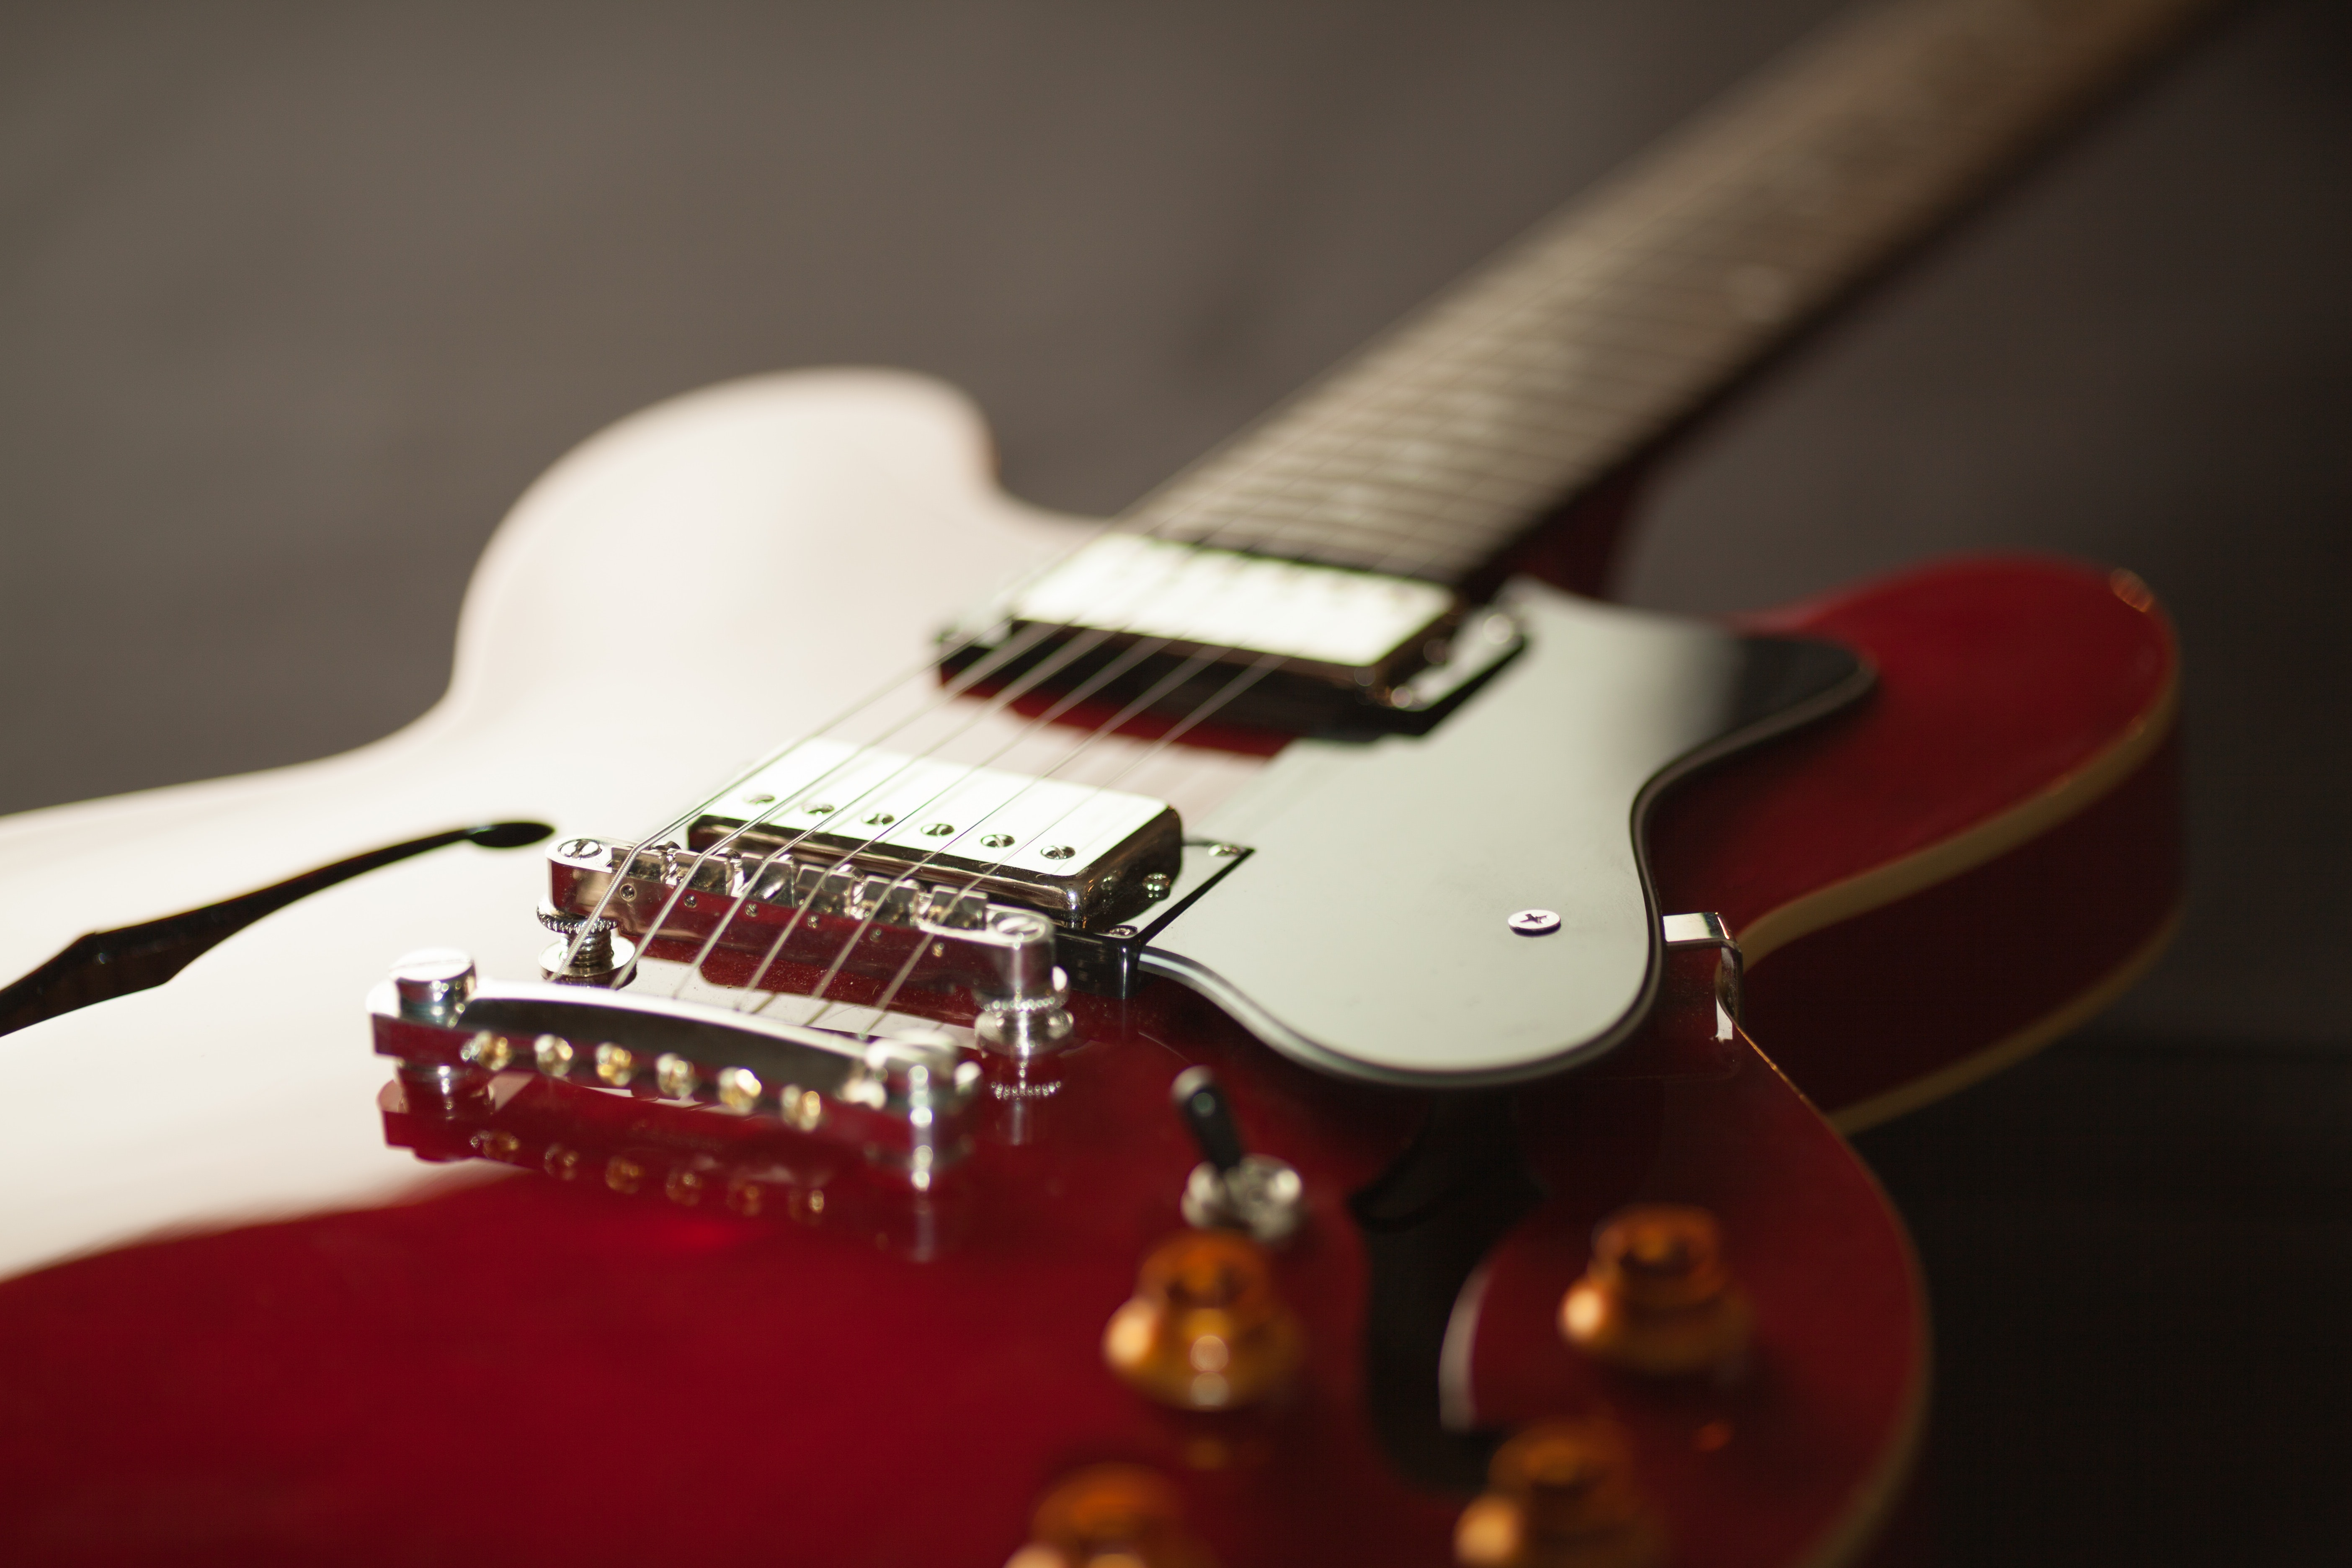 Red Electric Guitar Free Stock Photo